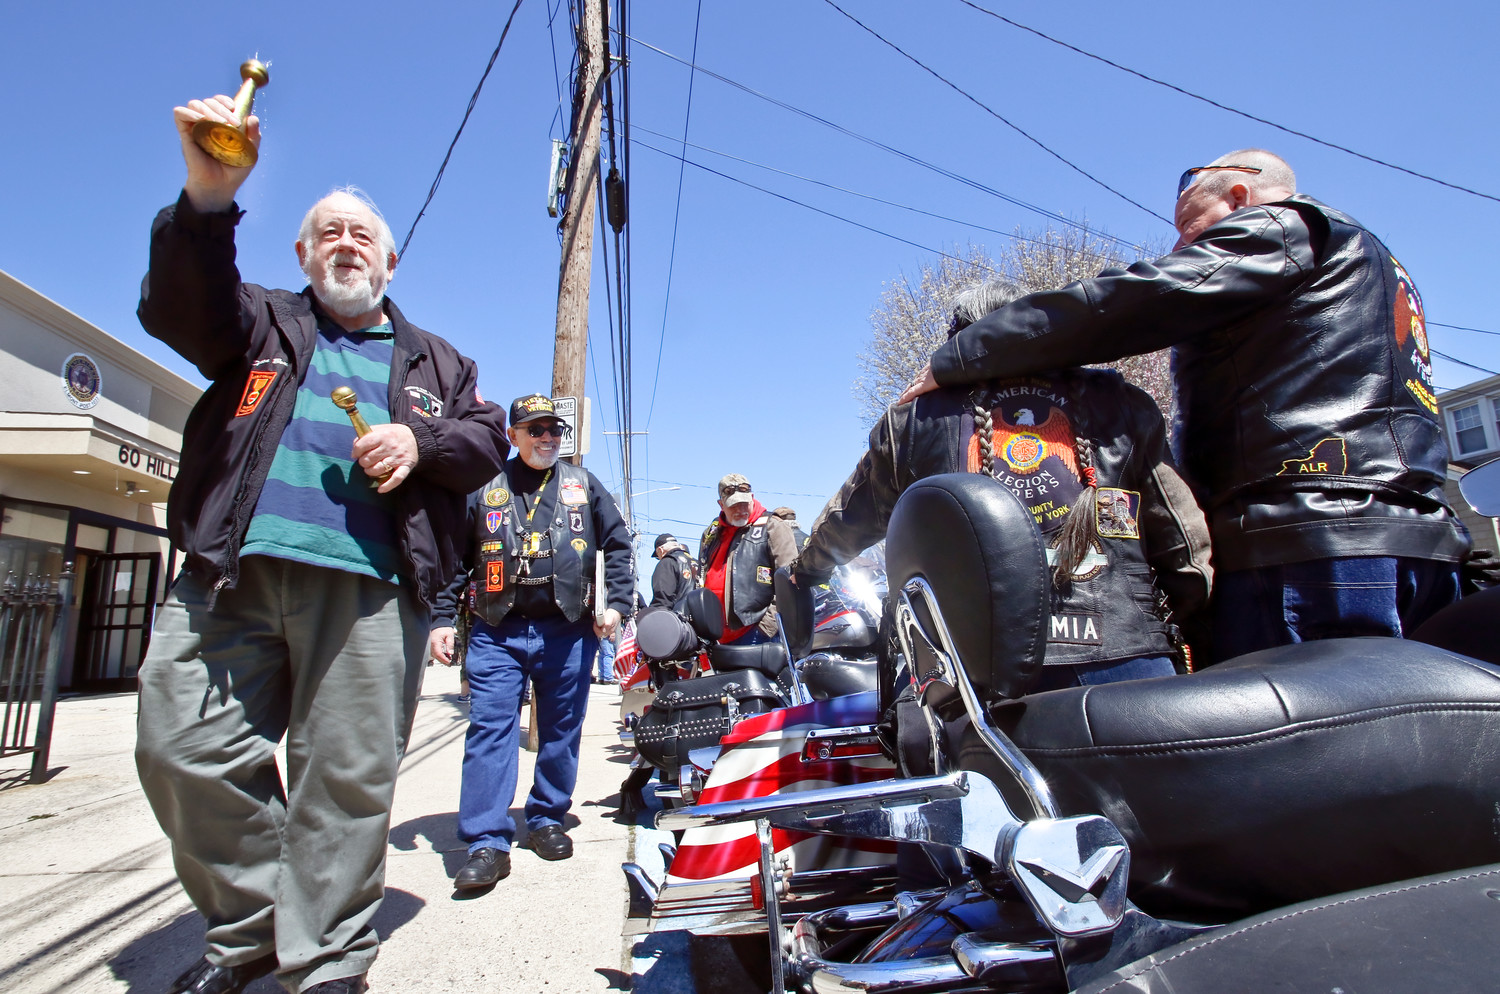 During the annual Blessing of the Bikes at the Elmont American Legion, Deacon Bruce Burnham, from Holy Redeemer Church in Freeport, sprinkles holy water on each motorcycle after reciting the Motorcyclists's Prayer. He is followed by Sal Martella, founder of the Elmont Legion Riders.